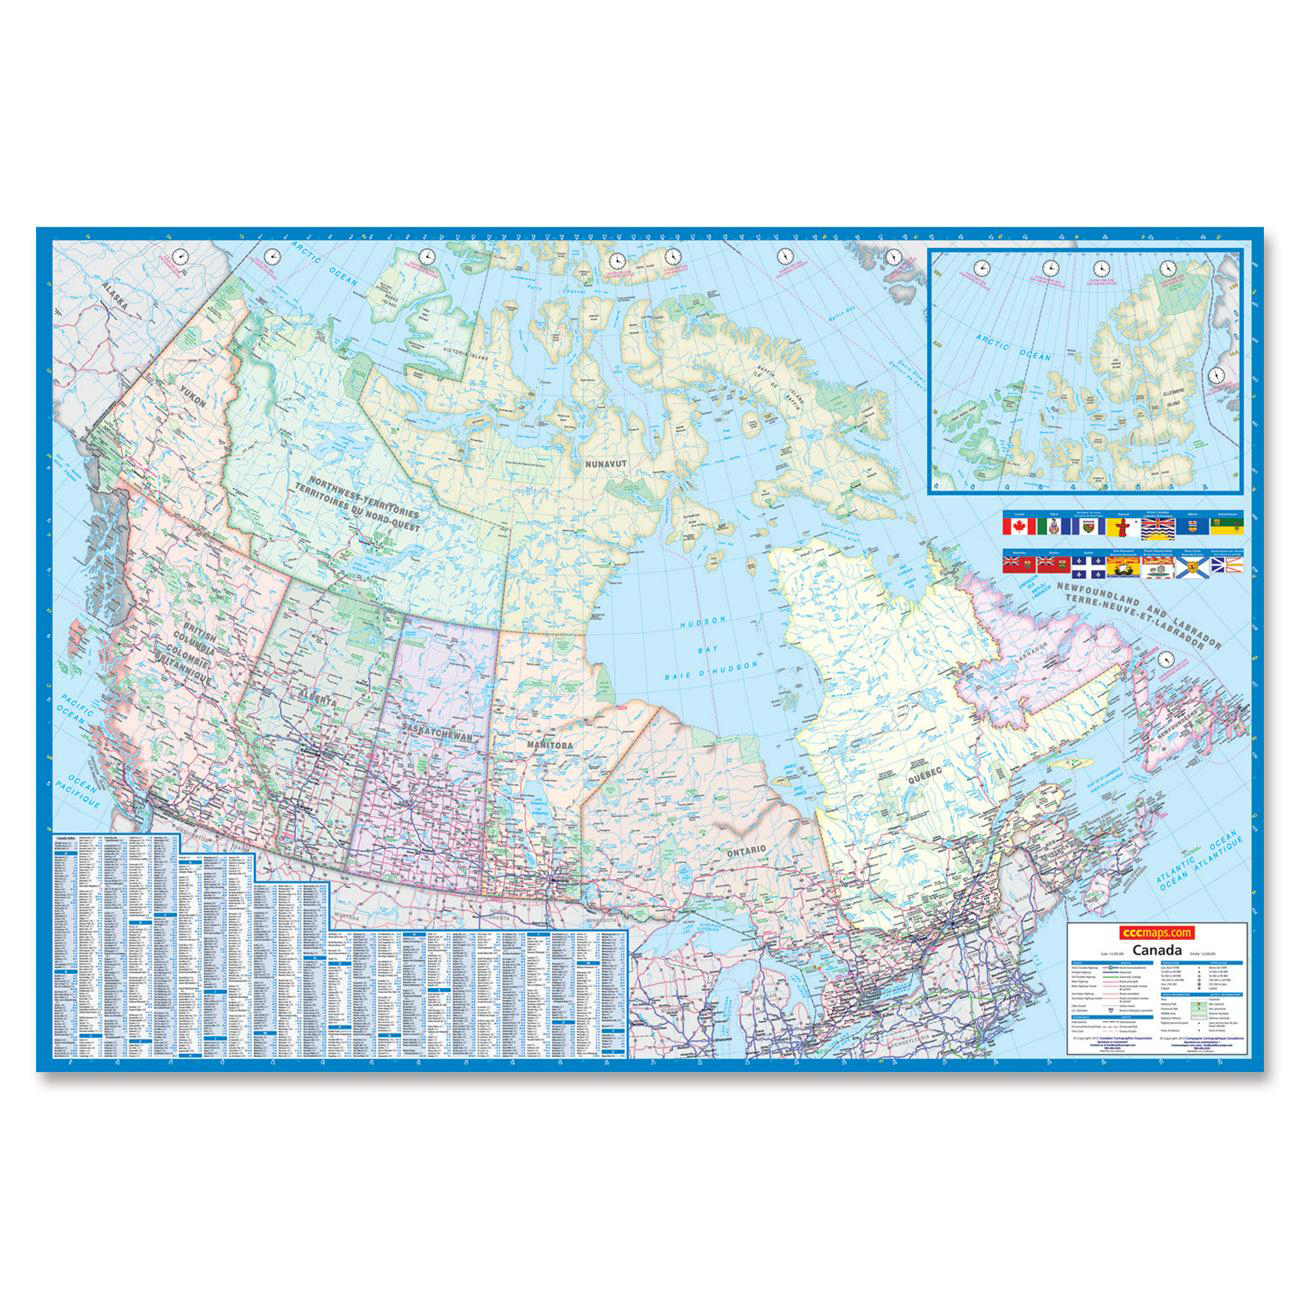 wake up your walls with this colorful contemporary detailed canada wall map serves as a handy reference that provides political boundaries